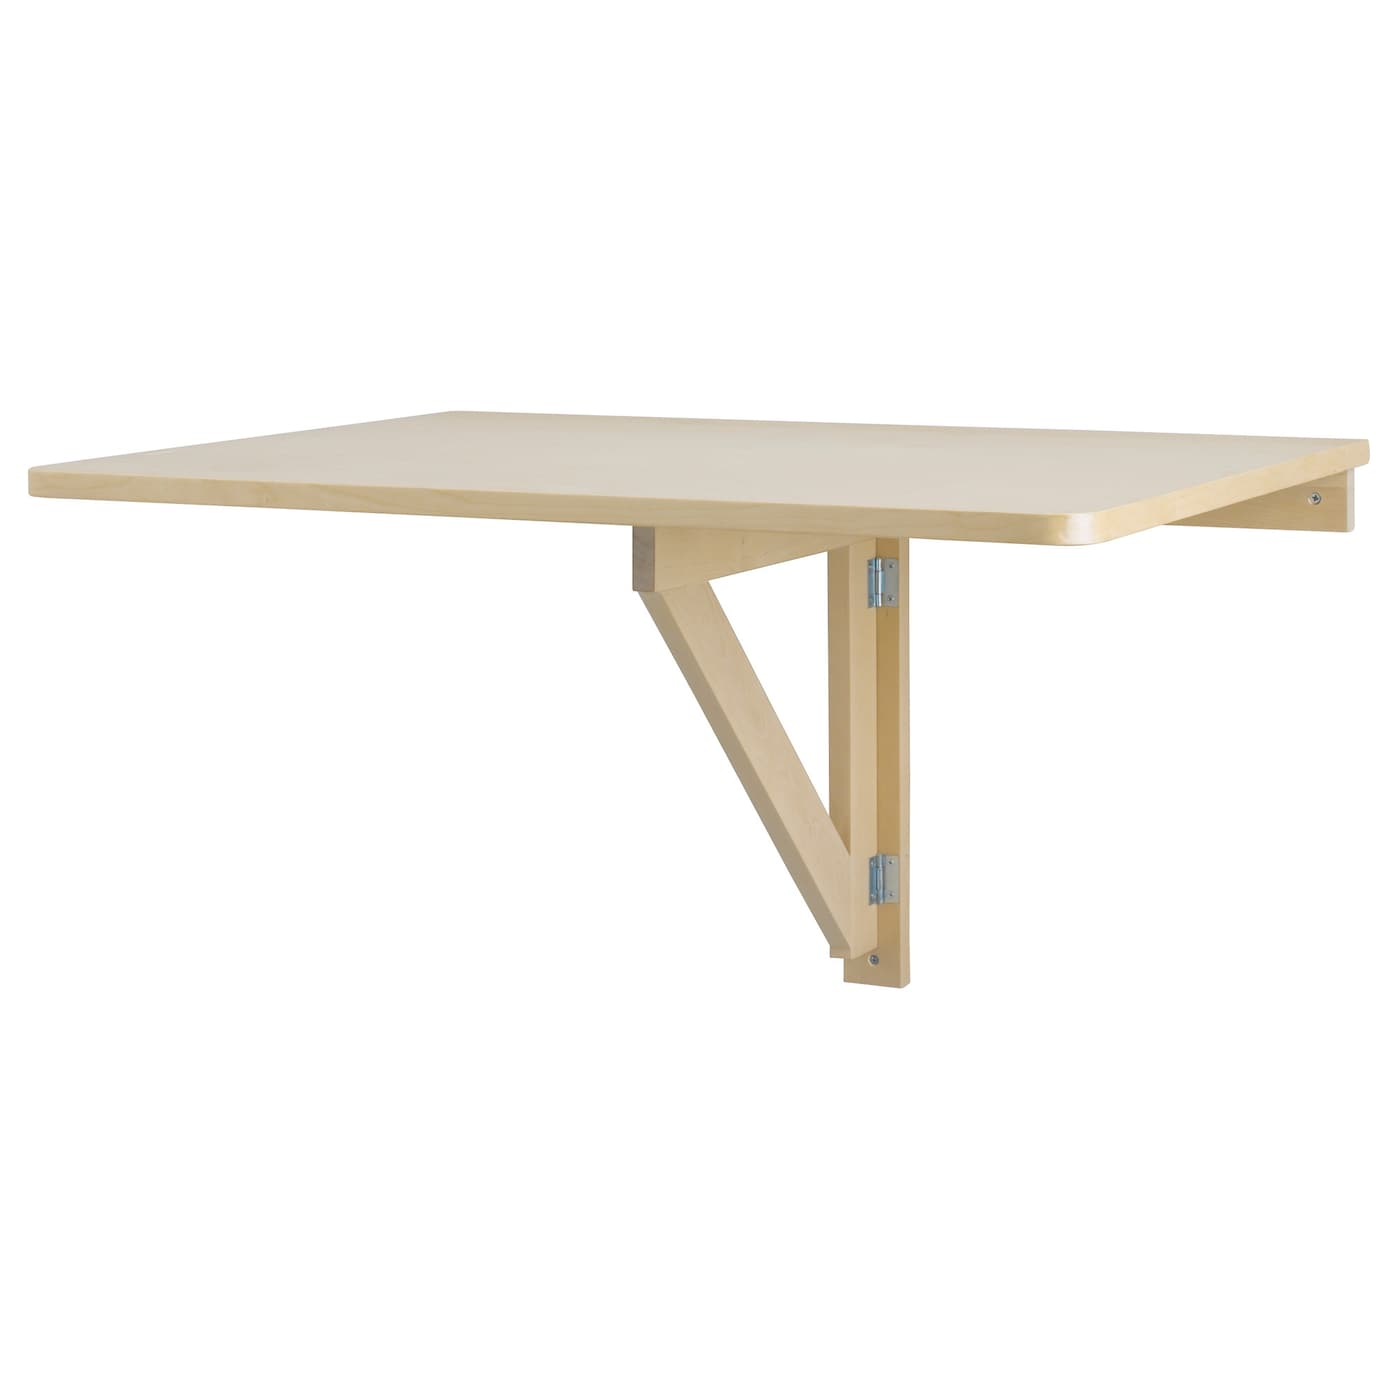 Wall mounted tables wall tables ikea - Table reglable en hauteur ikea ...